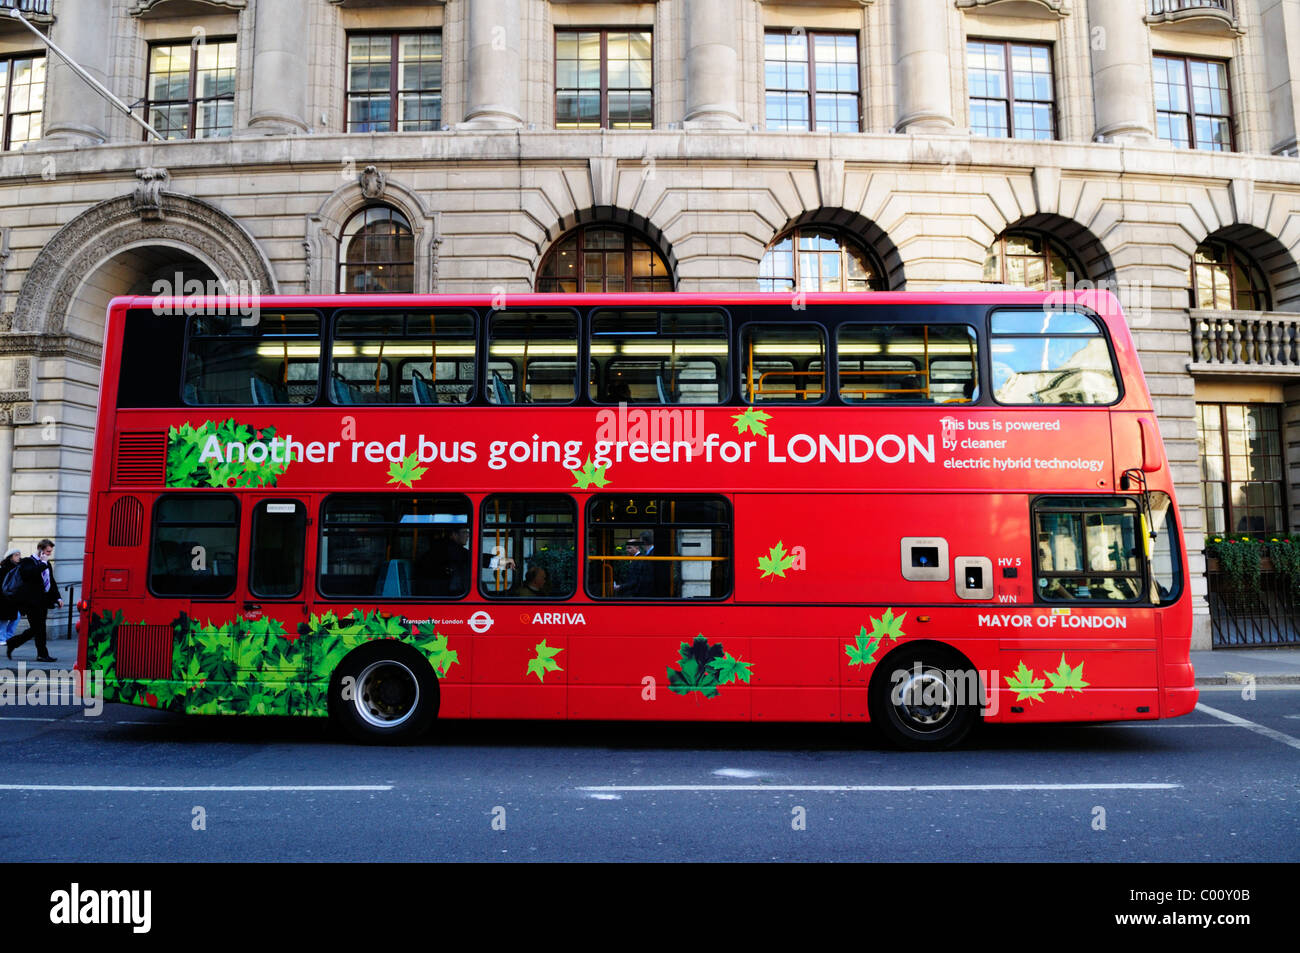 Red Double Decker Bus powered by electric hybrid technology, London, England, UK - Stock Image